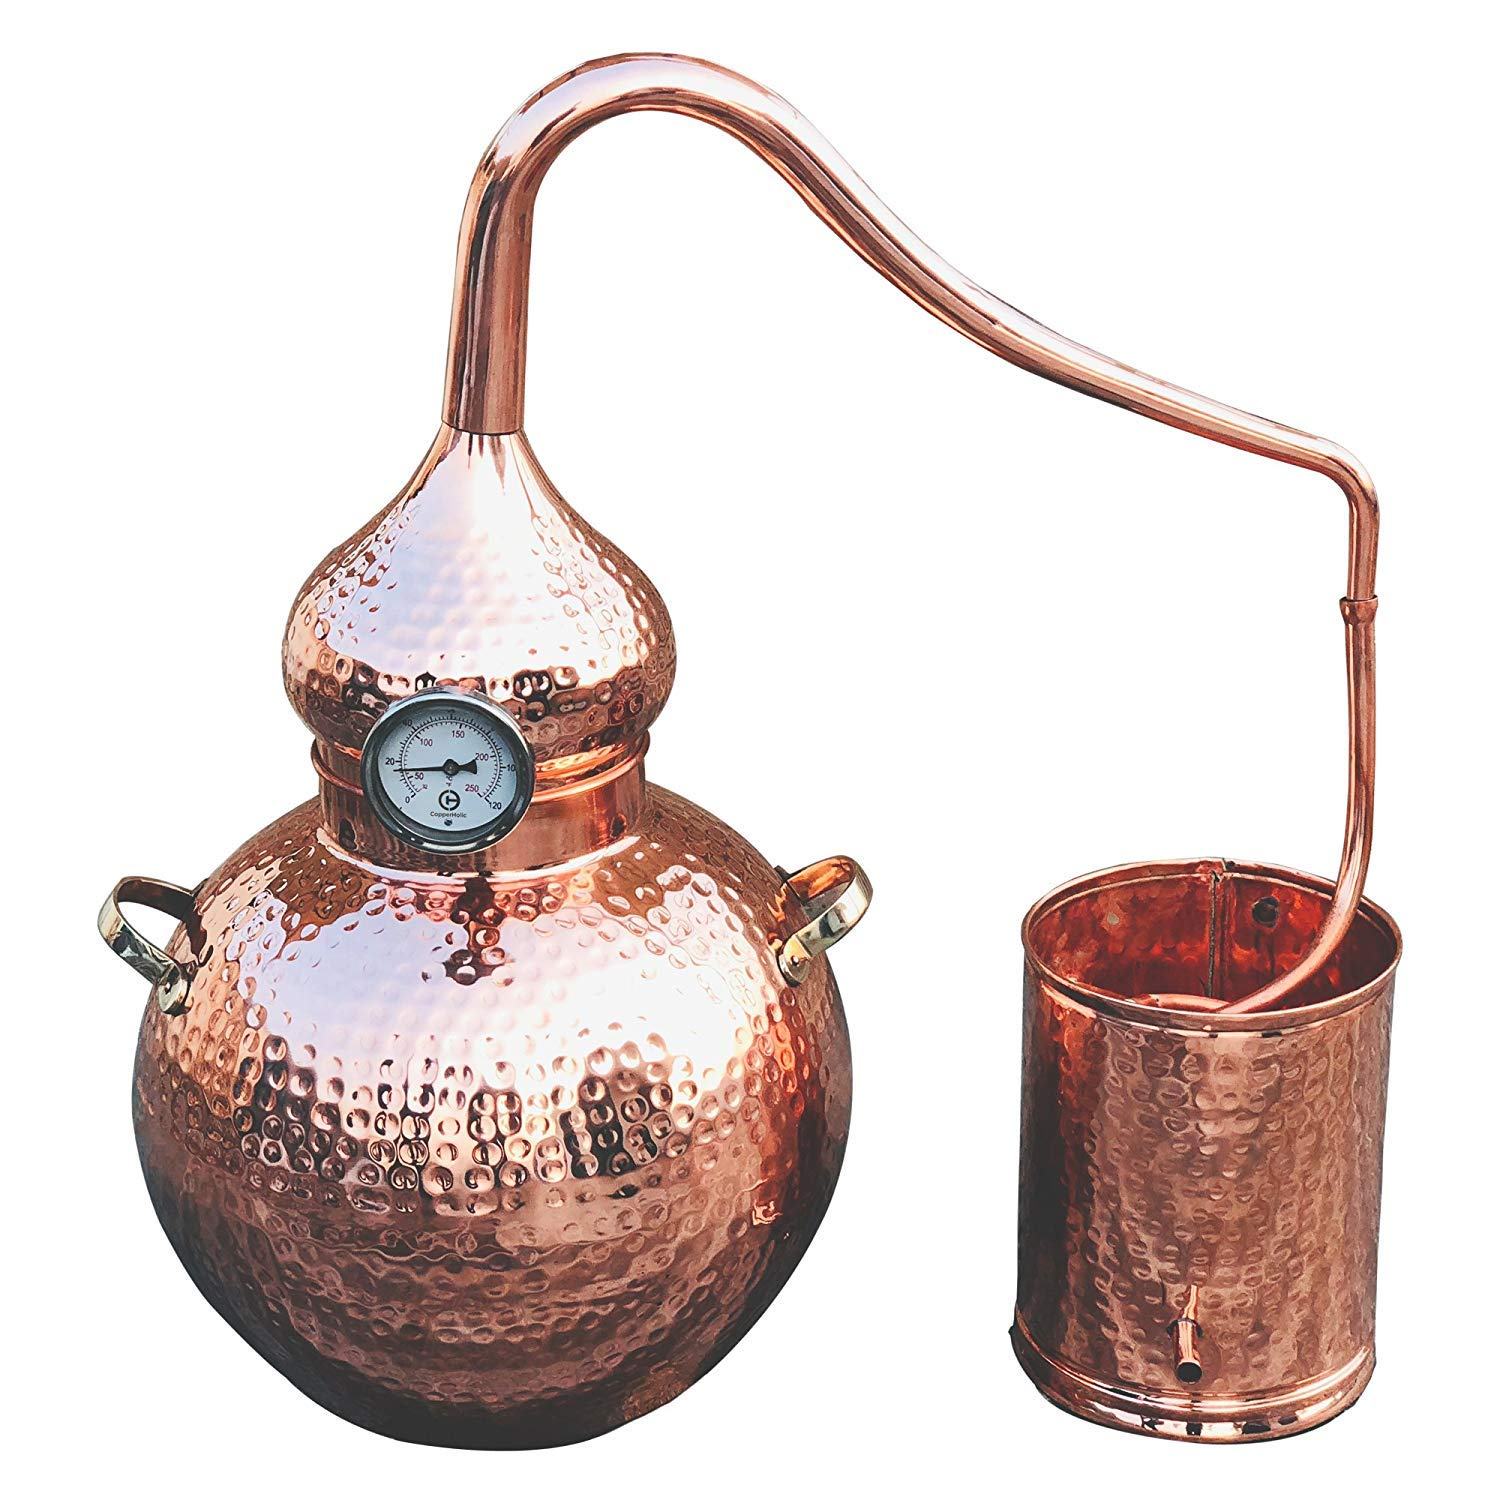 5 Gallon Pure Copper Alembic Still for whiskey, moonshine essential oils by Copperholic